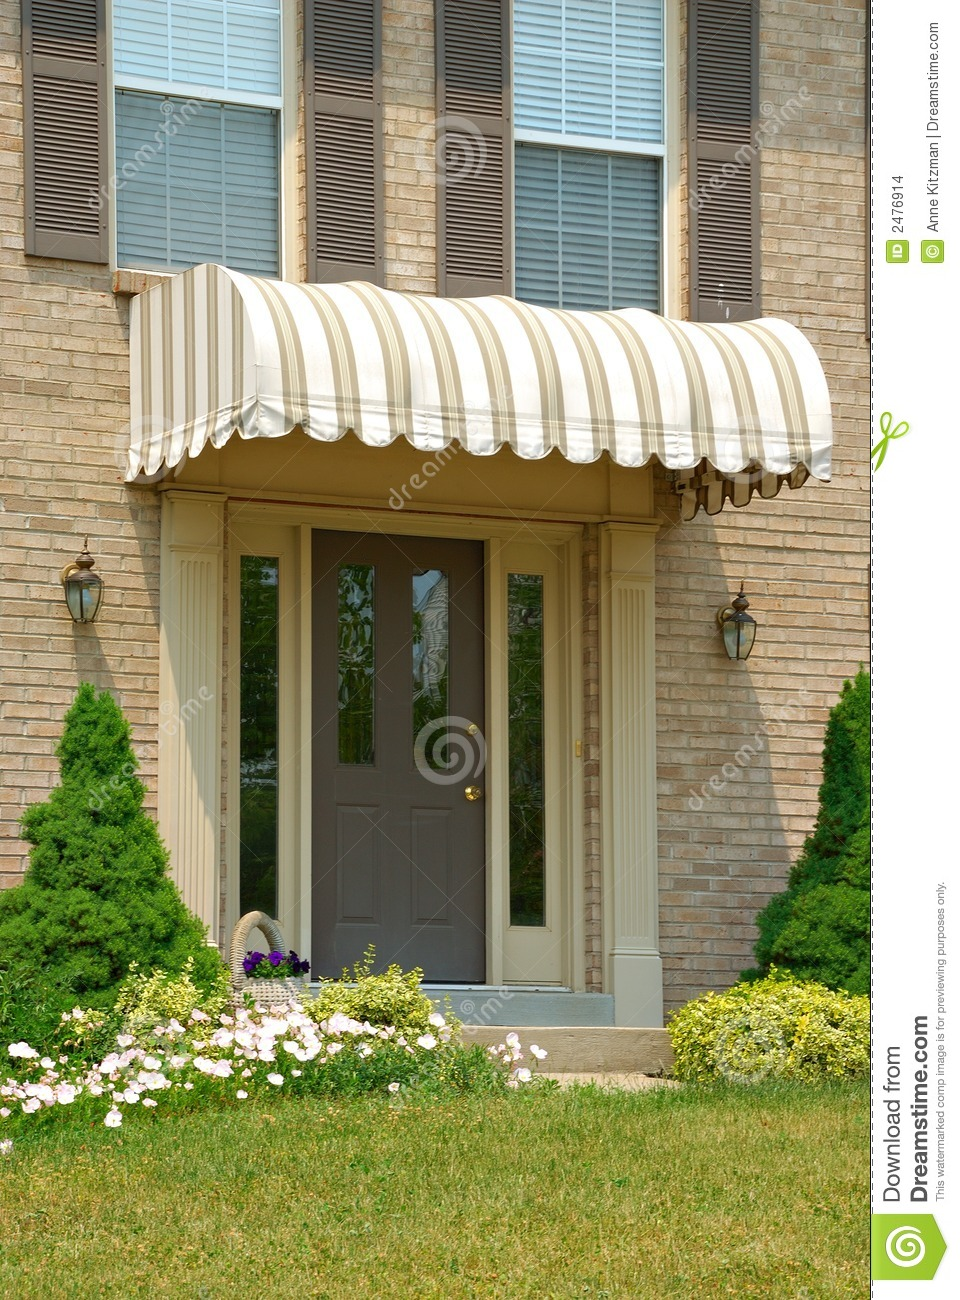 Red entrance door in front of residential house stock photo - Front Door Awning Stock Images Image 2476914